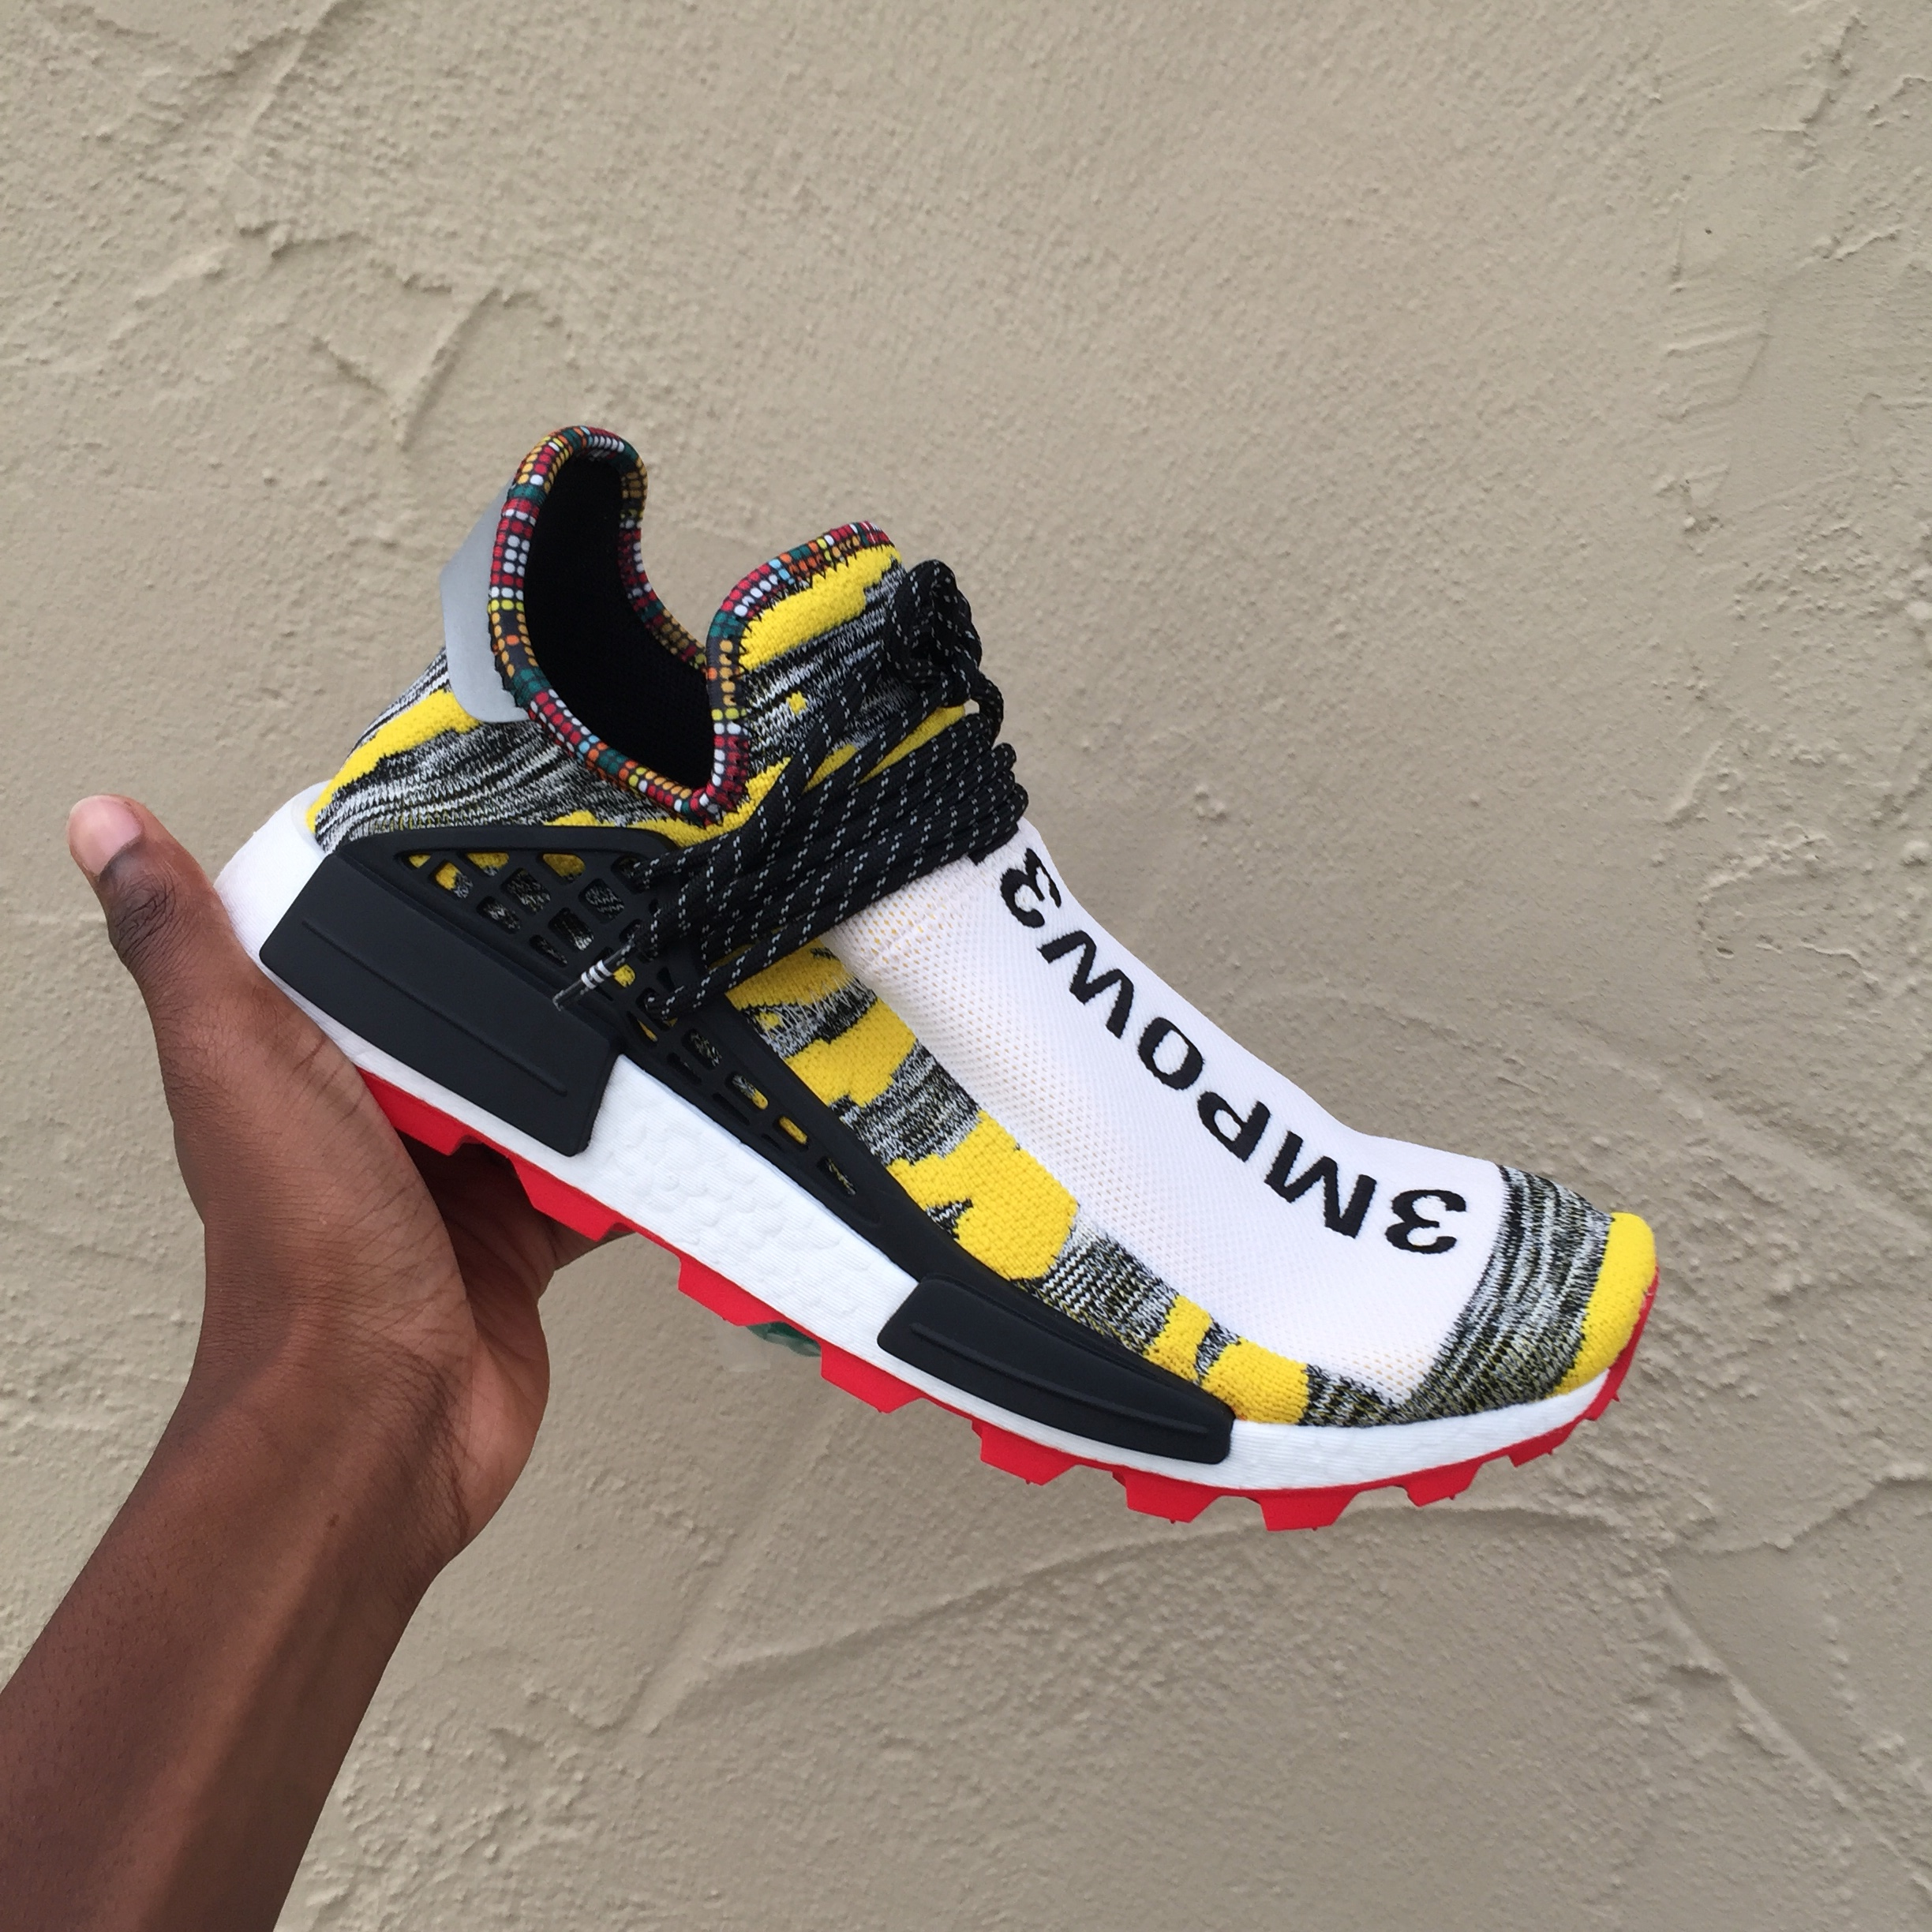 quality design 67b20 26506 Adidas x Pharrell Williams x Solar (Afro) HU NMD. ... - Depop